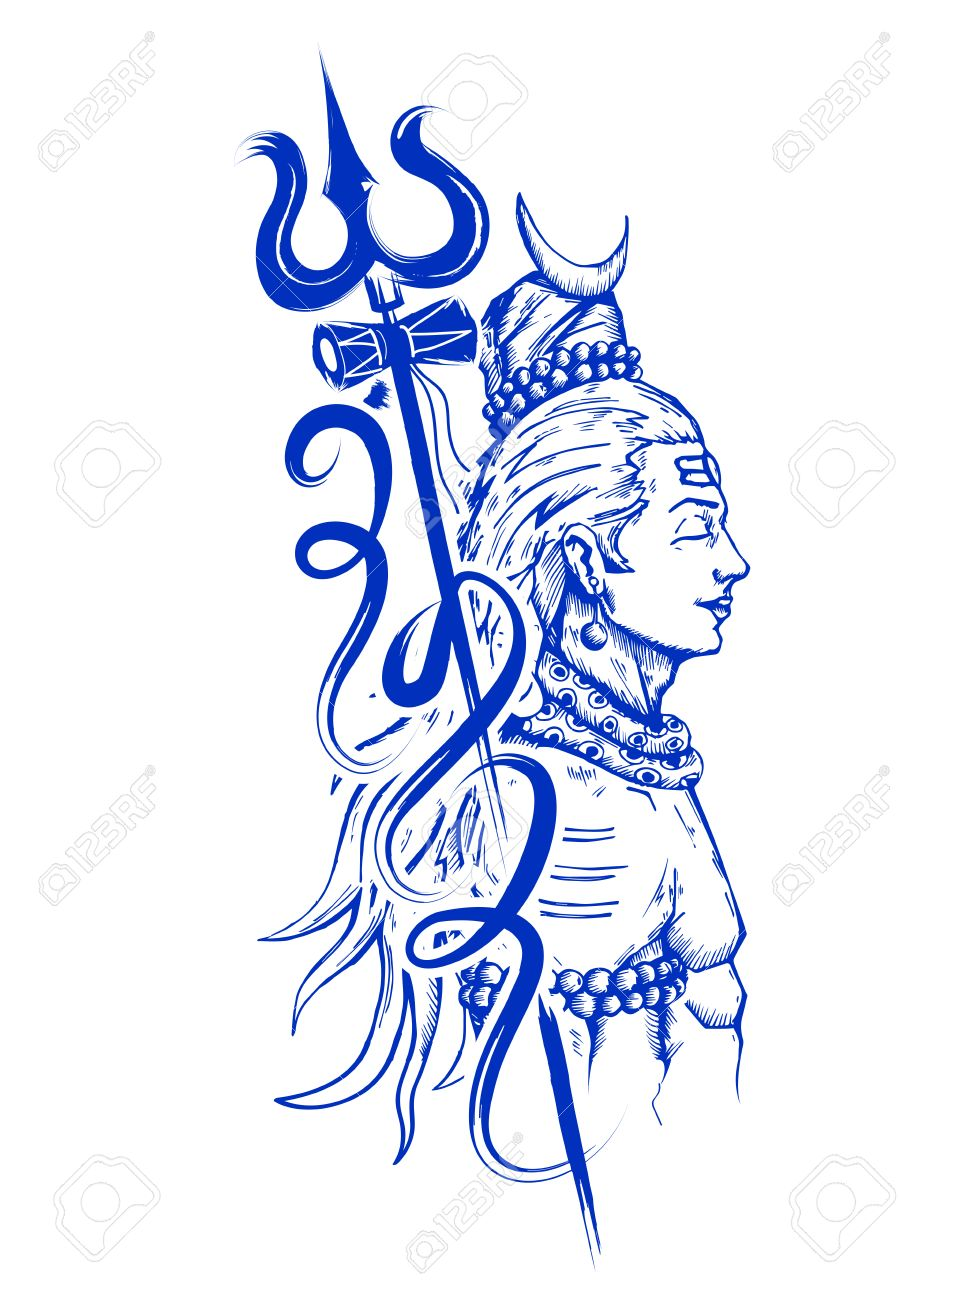 Lord Shiva, Indian God of Hin - Lord Shiva Clipart